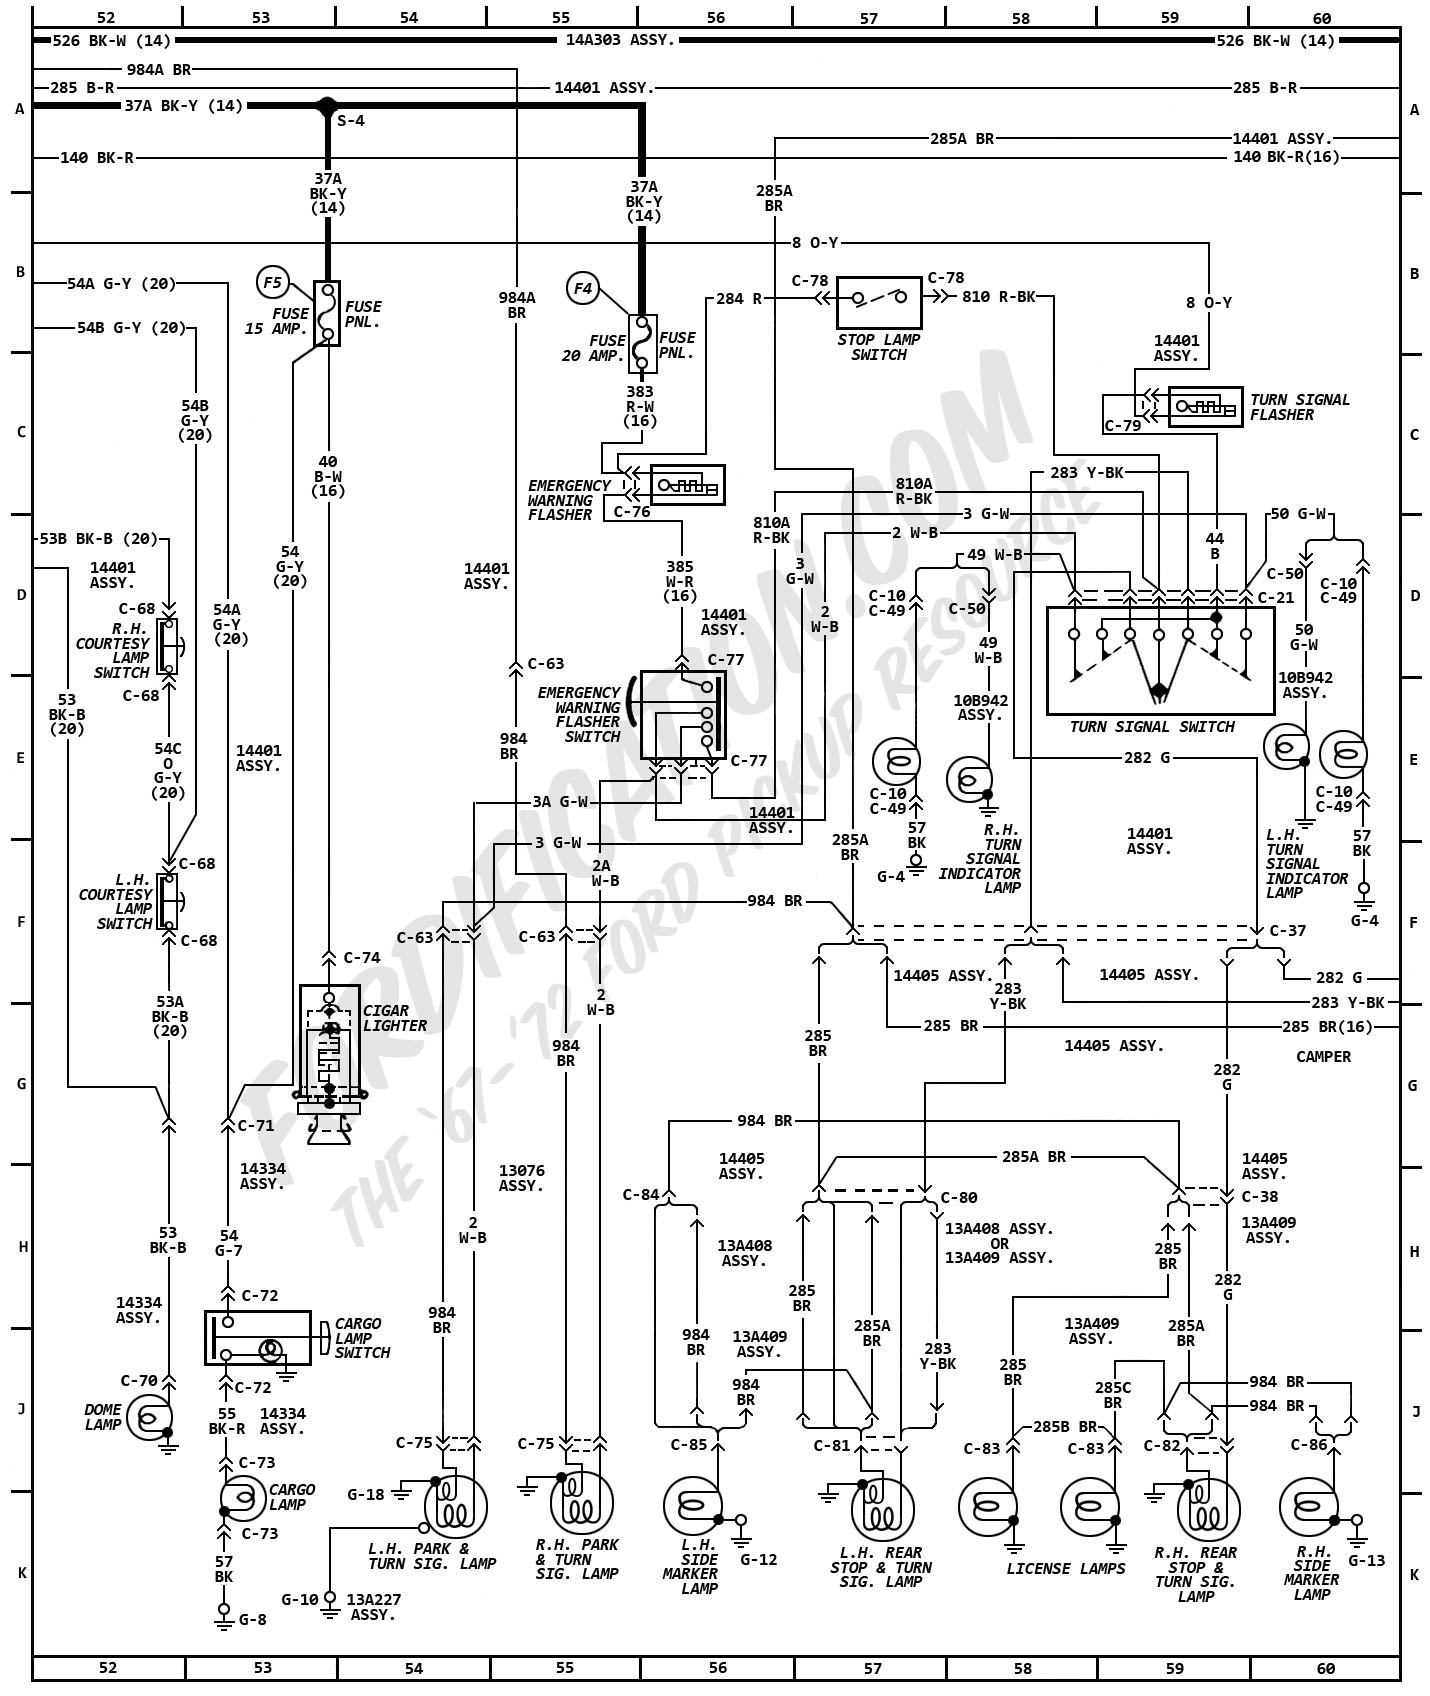 1976 ford truck starting circuit wiring diagrams 1963 ford truck f 100 wiring diagrams